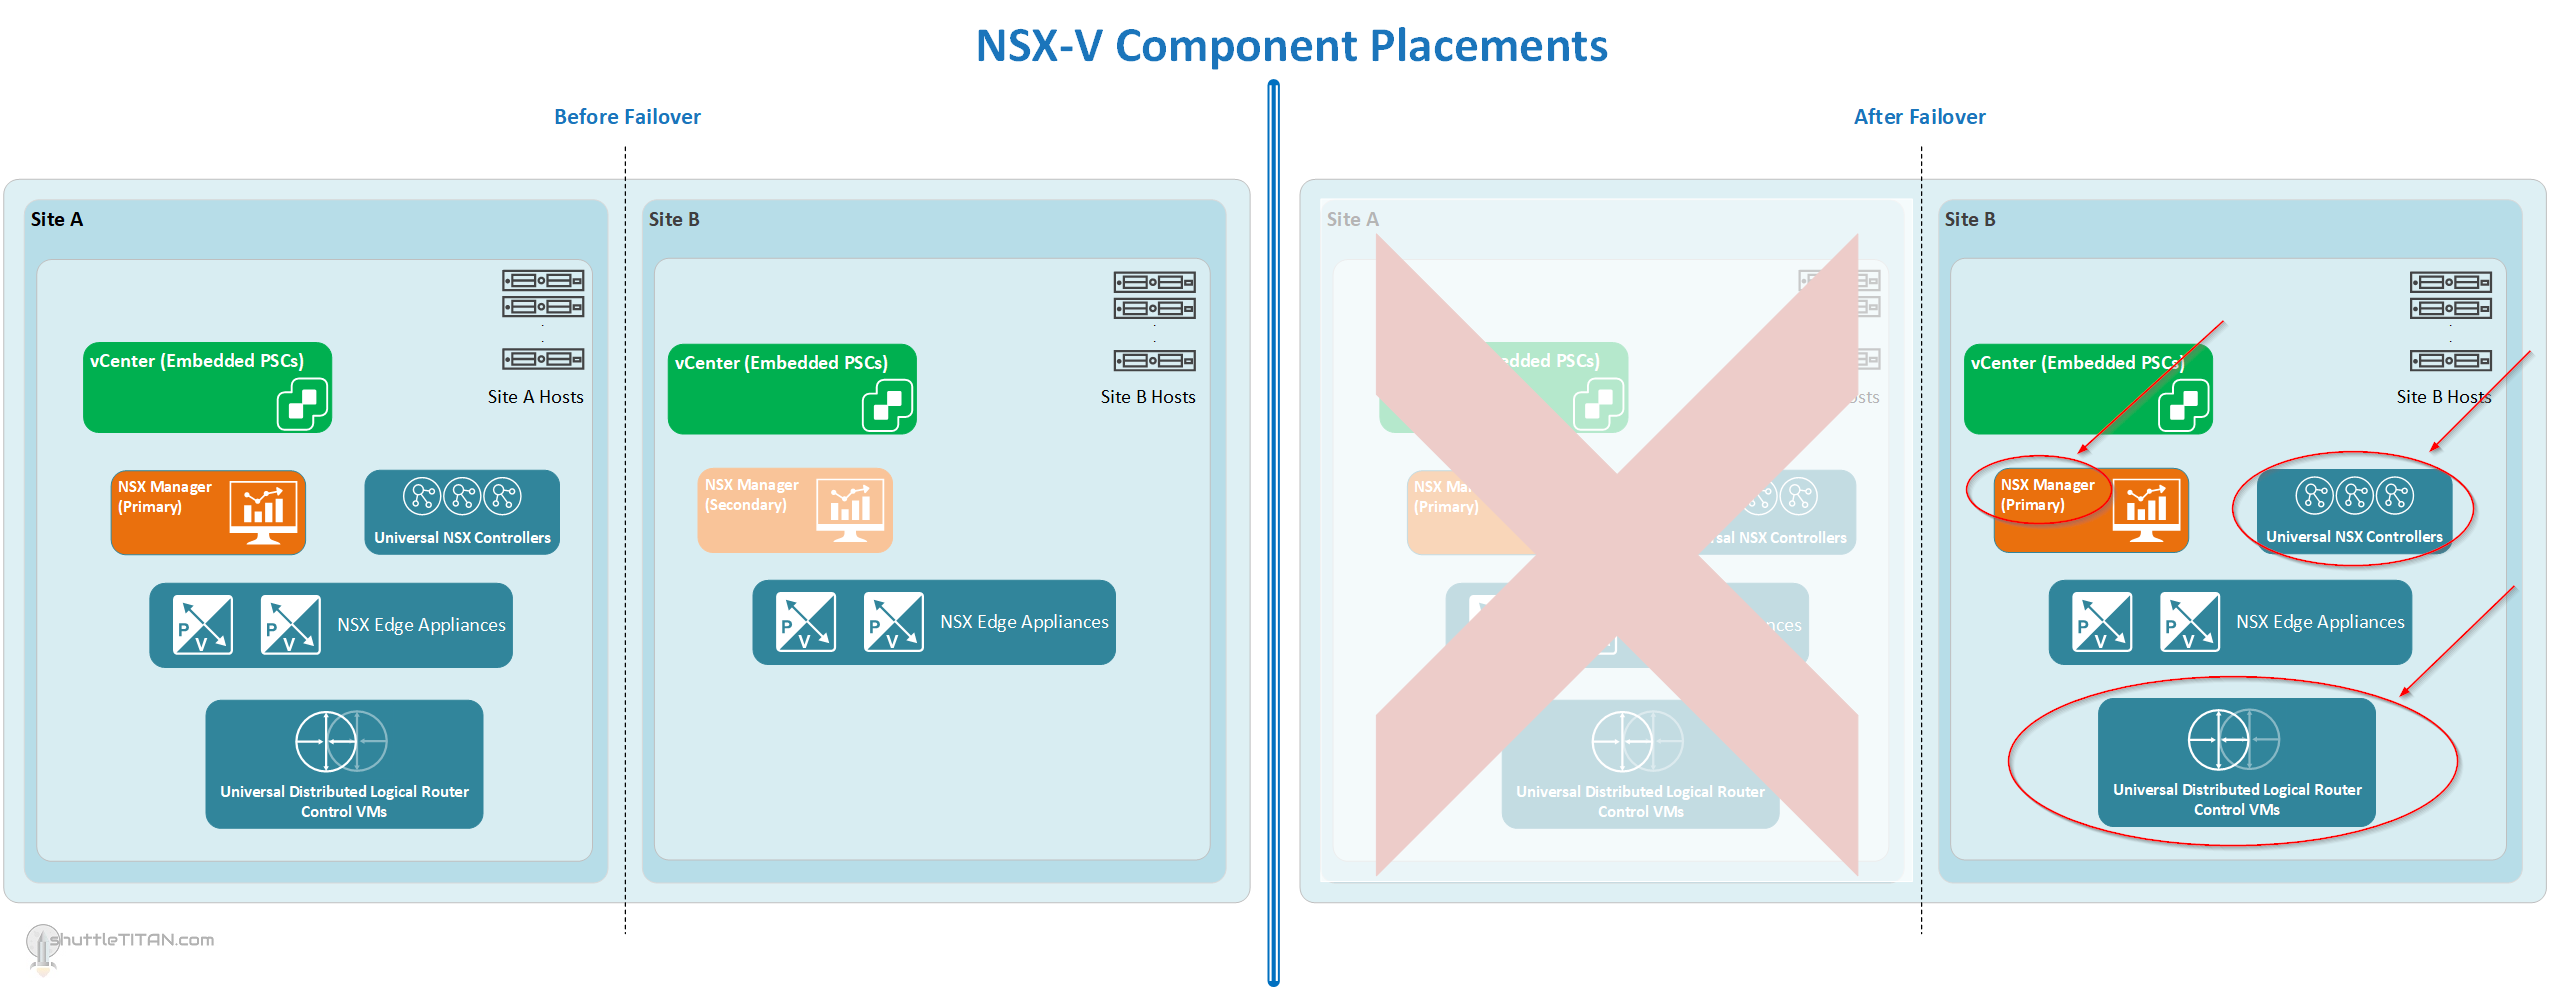 NSX-V Site Failover/Failback Plan: Part 1